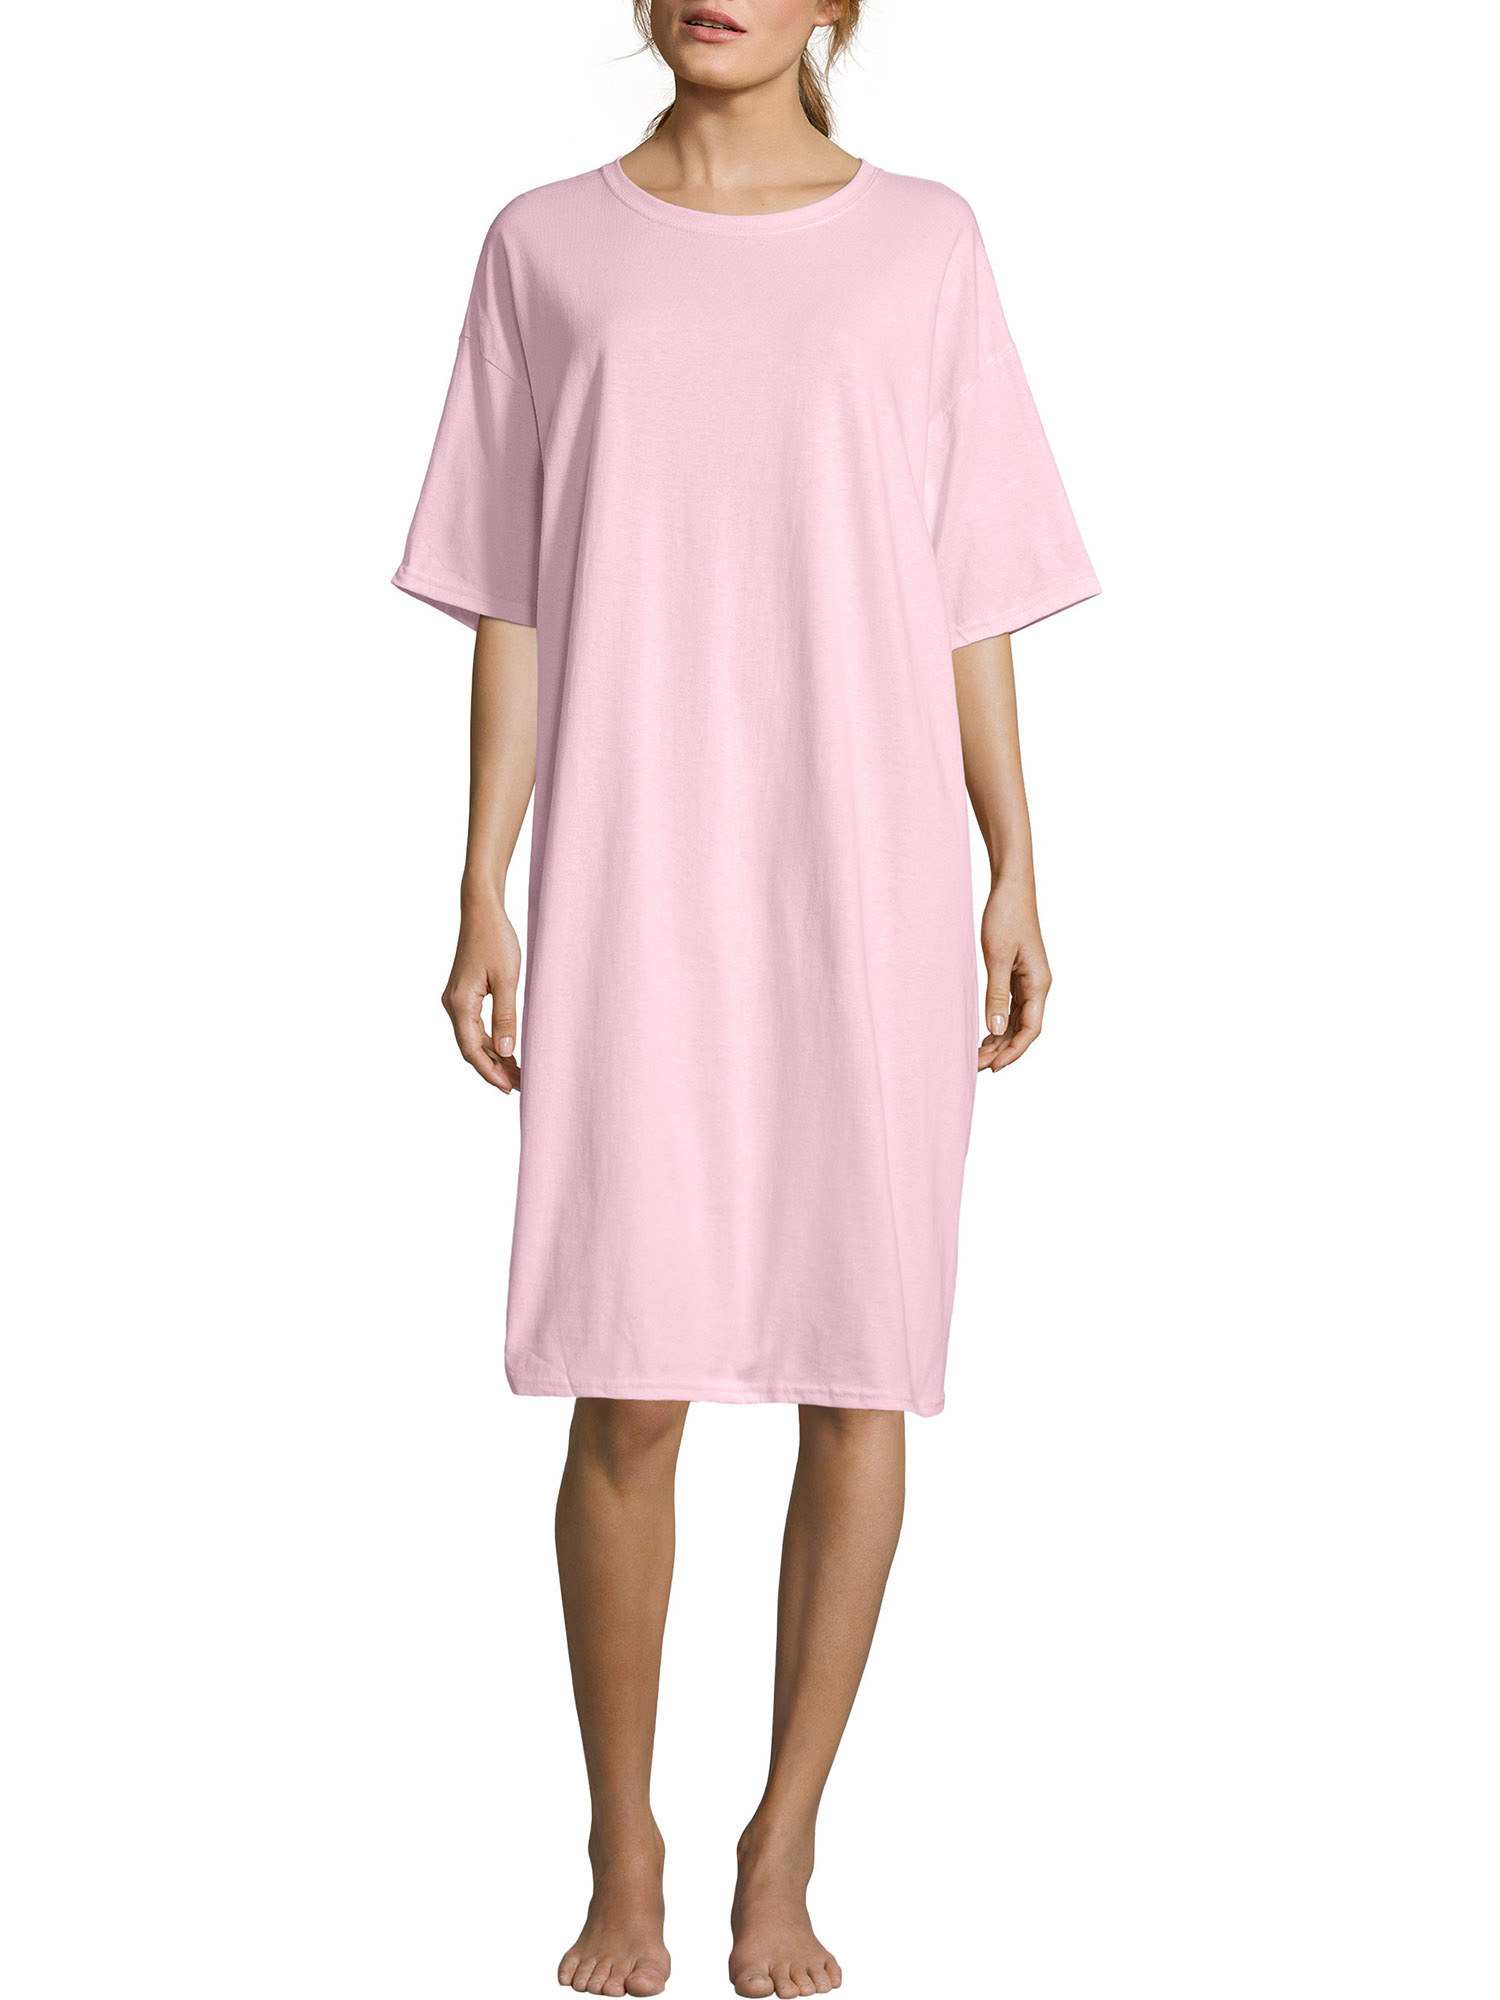 Model wearing the T-shirt dress in pink